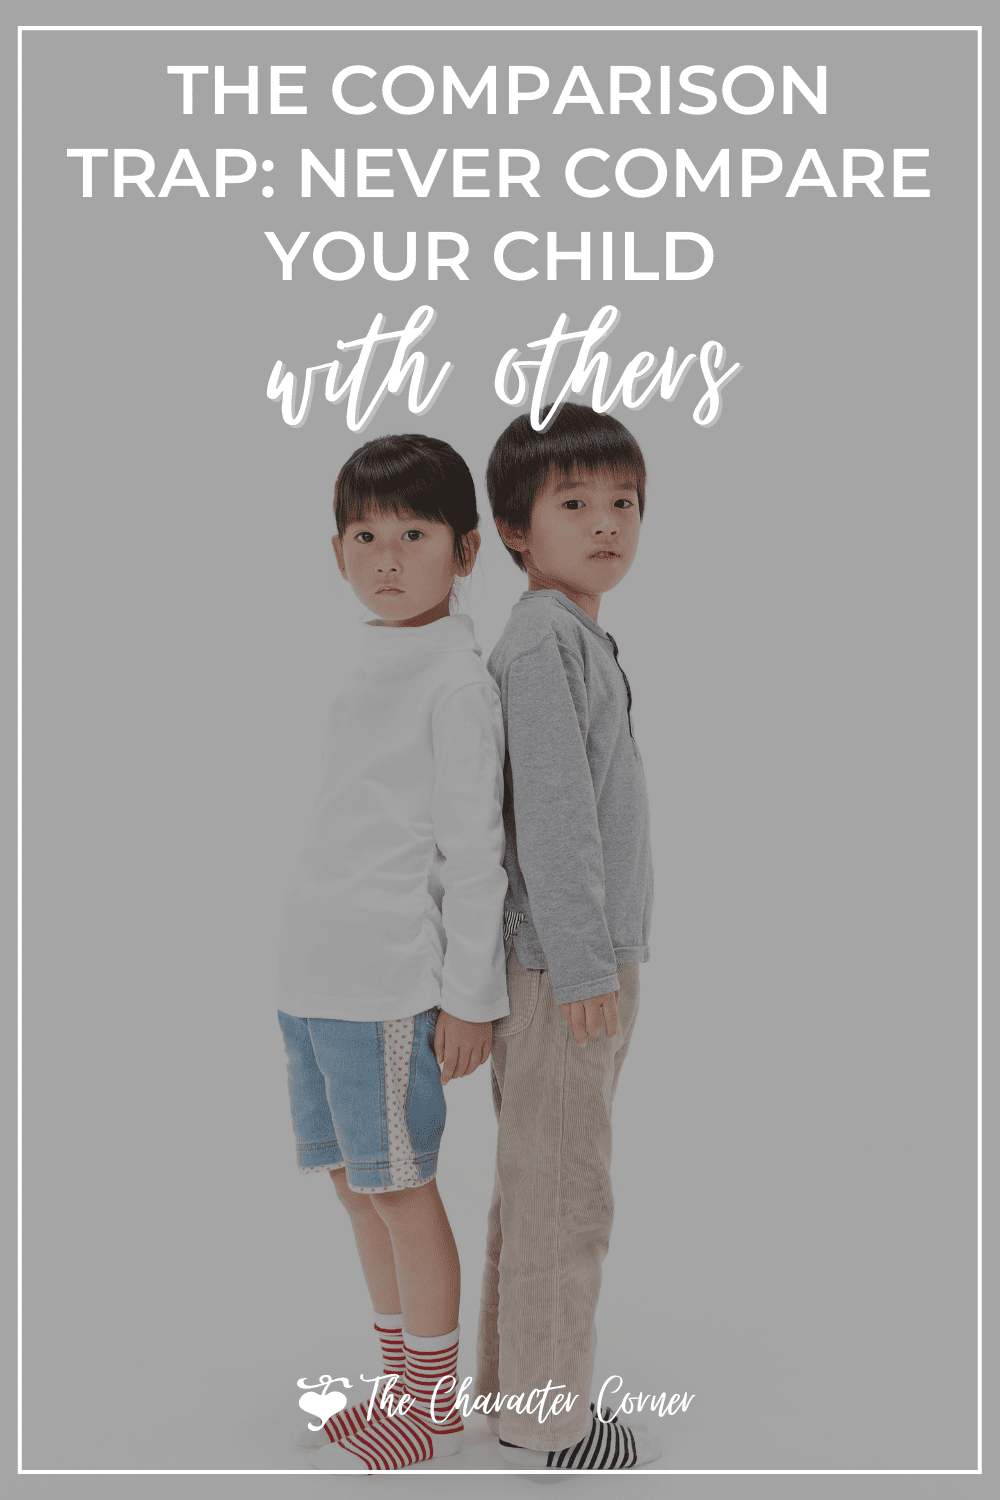 text on image reads Never compare your child to others